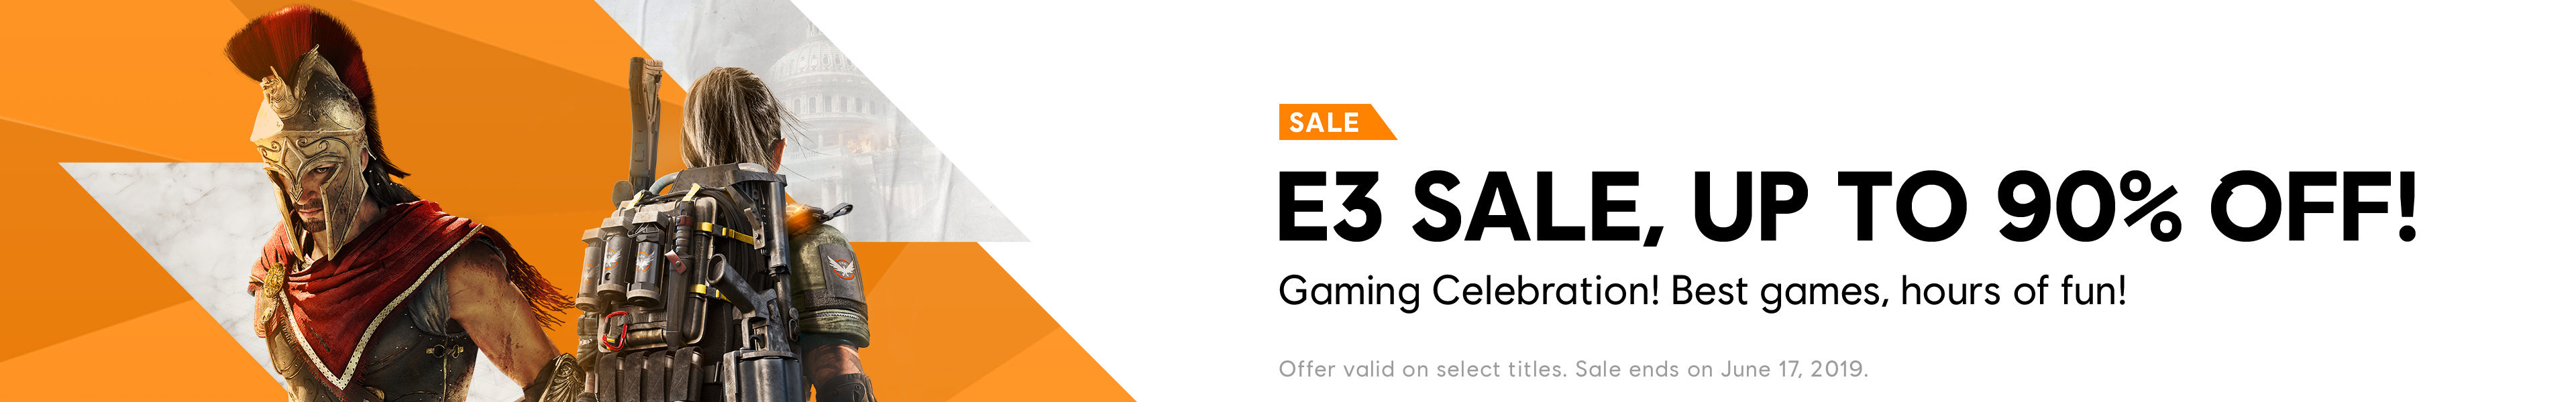 E3 Sale Category banner